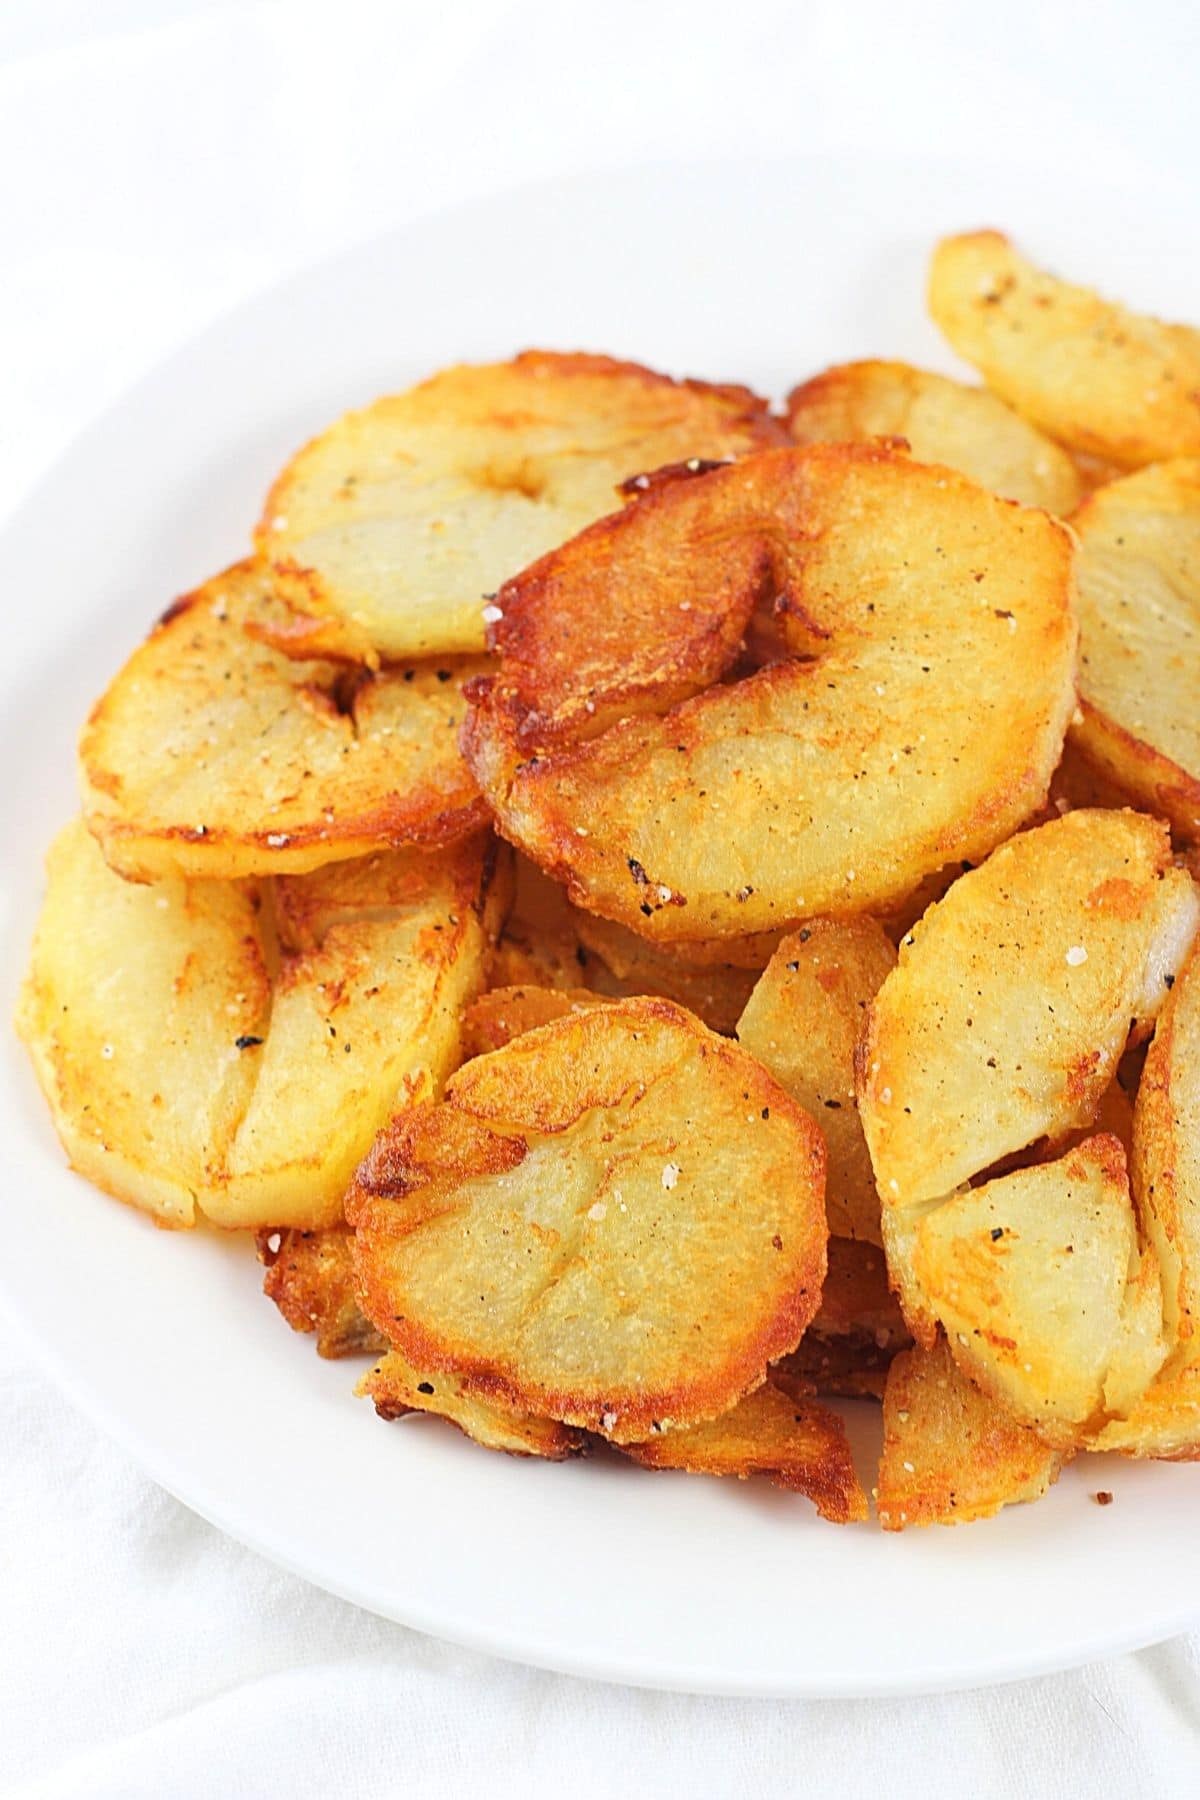 leftover baked potato home fries on a white plate